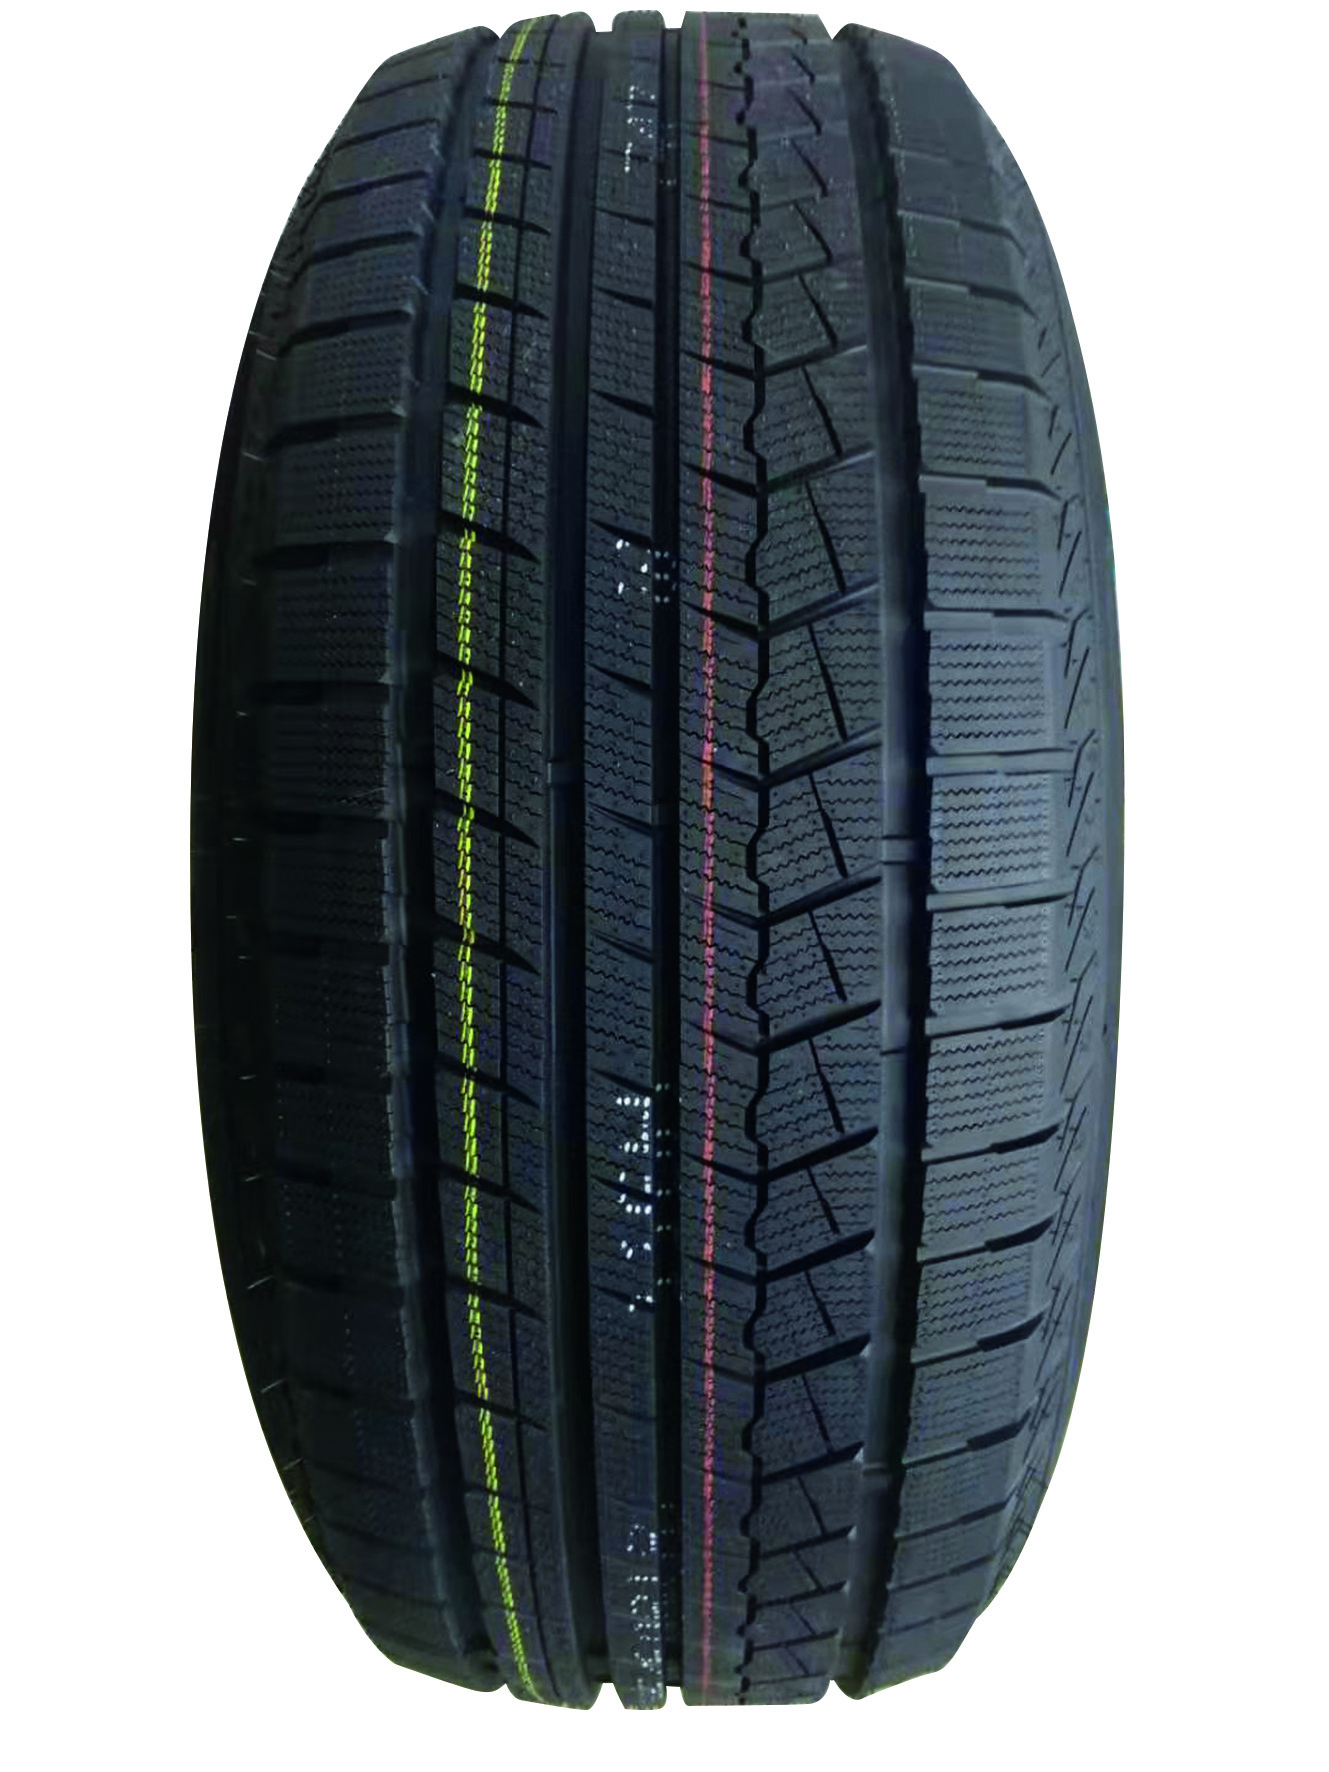 Gomme Autovettura T-Tyre 205/60 R16 96H THIRTY TWO XL M+S Invernale